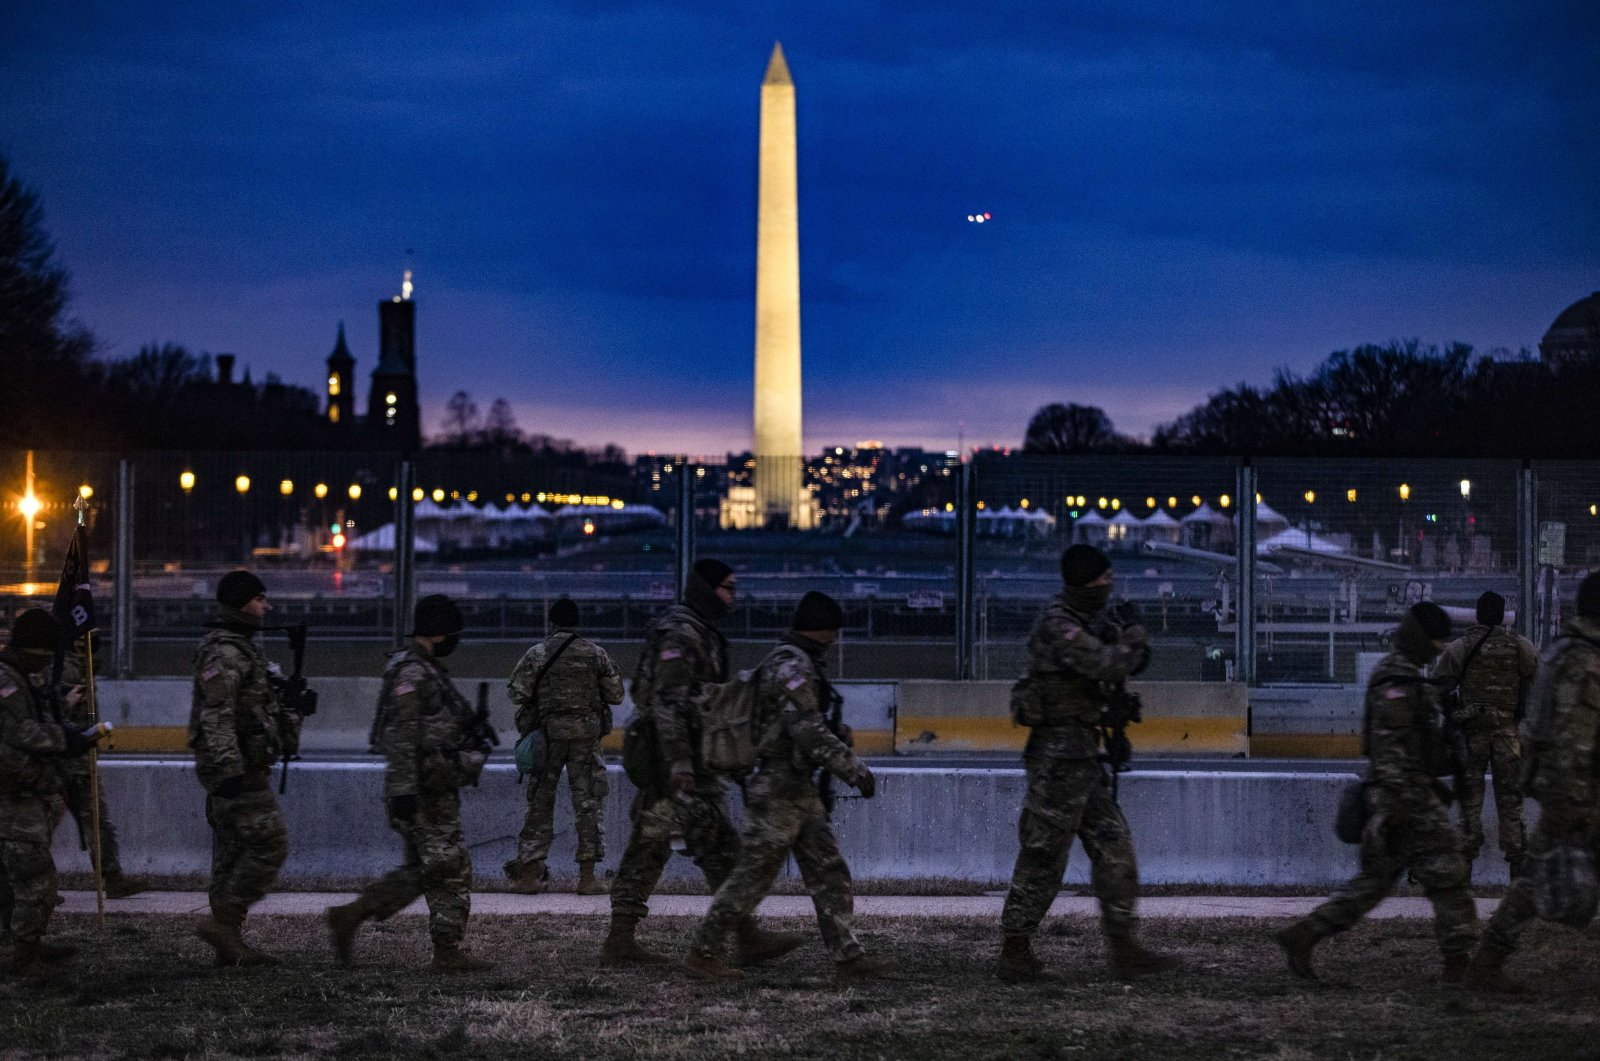 U.S. National Guard soldiers stand watch at the National Mall, Washington, D.C., U.S., Jan. 17, 2021. (AFP Photo)